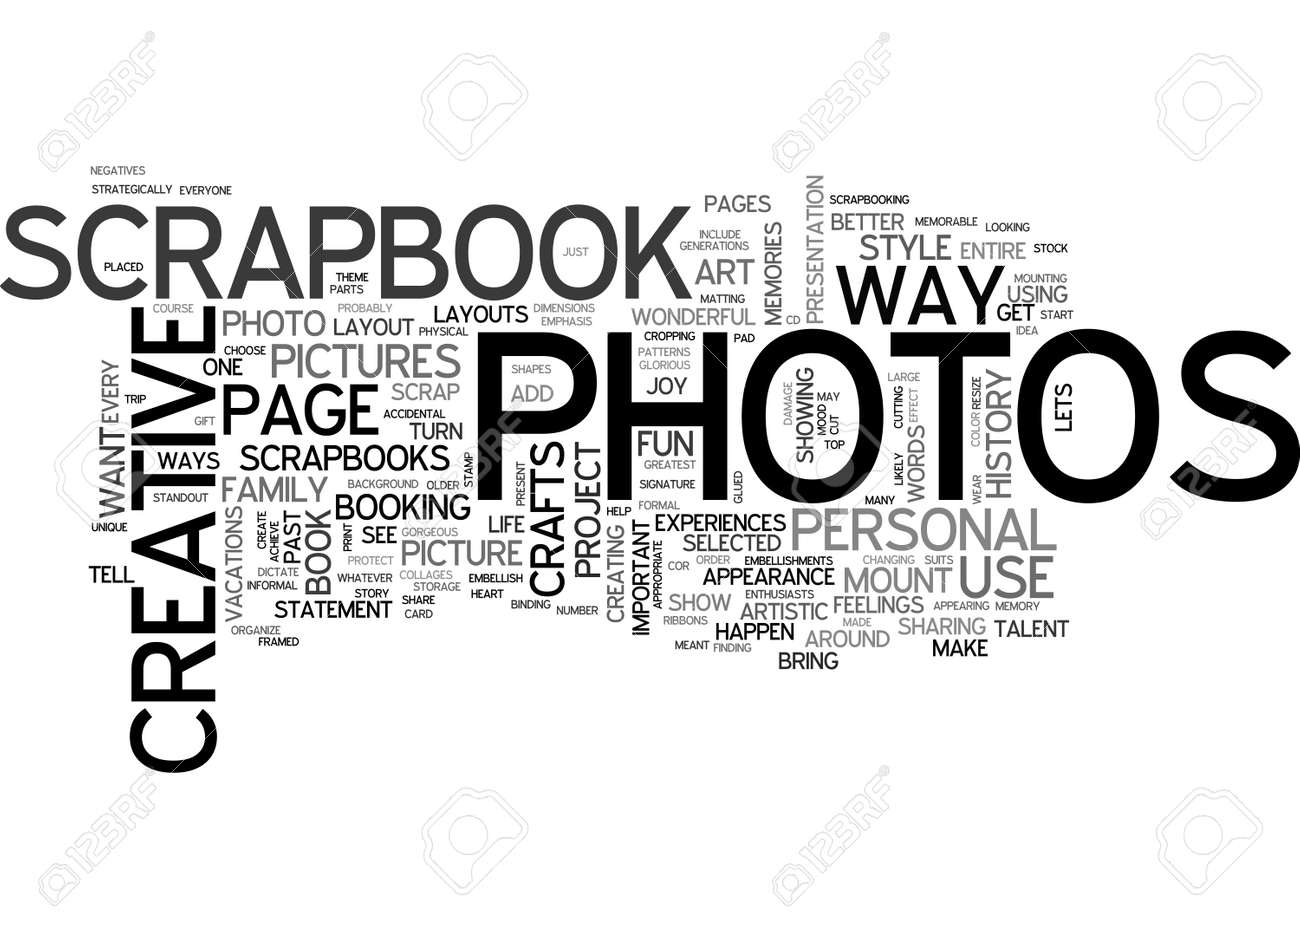 A Scrapbook Crafts Up Better Memories Text Word Cloud Concept Royalty Free Cliparts Vectors And Stock Illustration Image 79504747